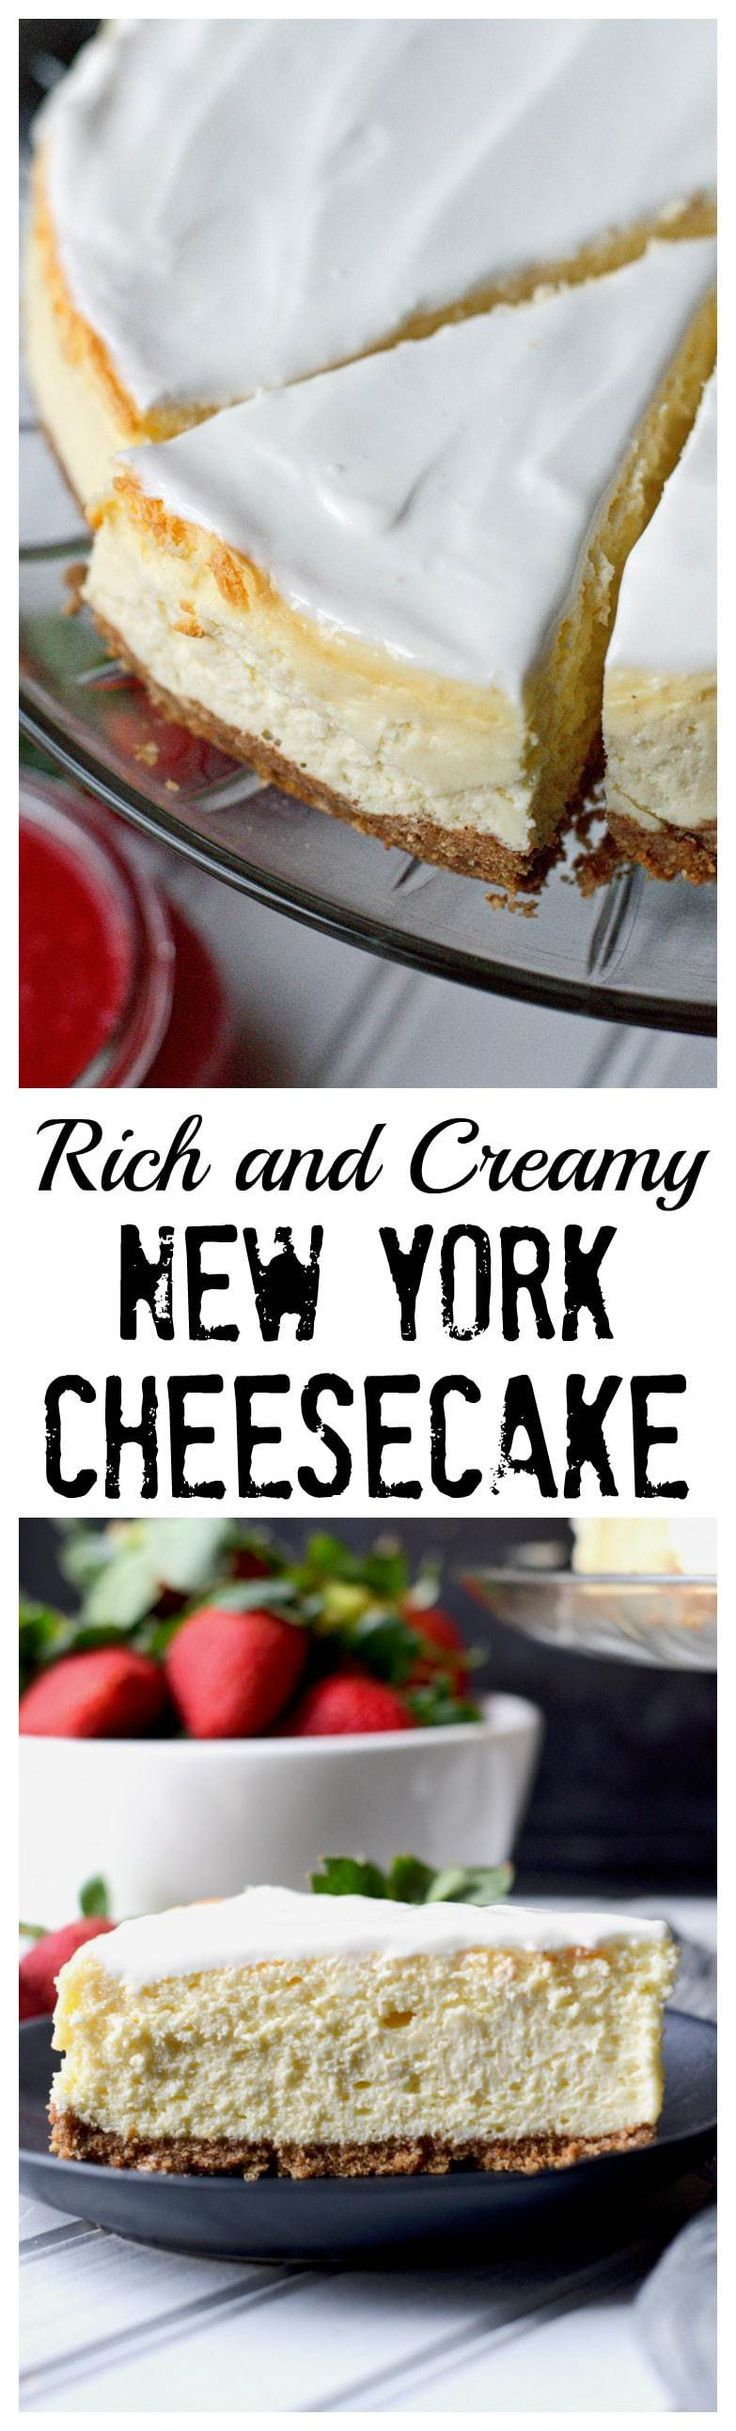 This rich and creamy New York Cheesecake recipe has been a family favorite for years.